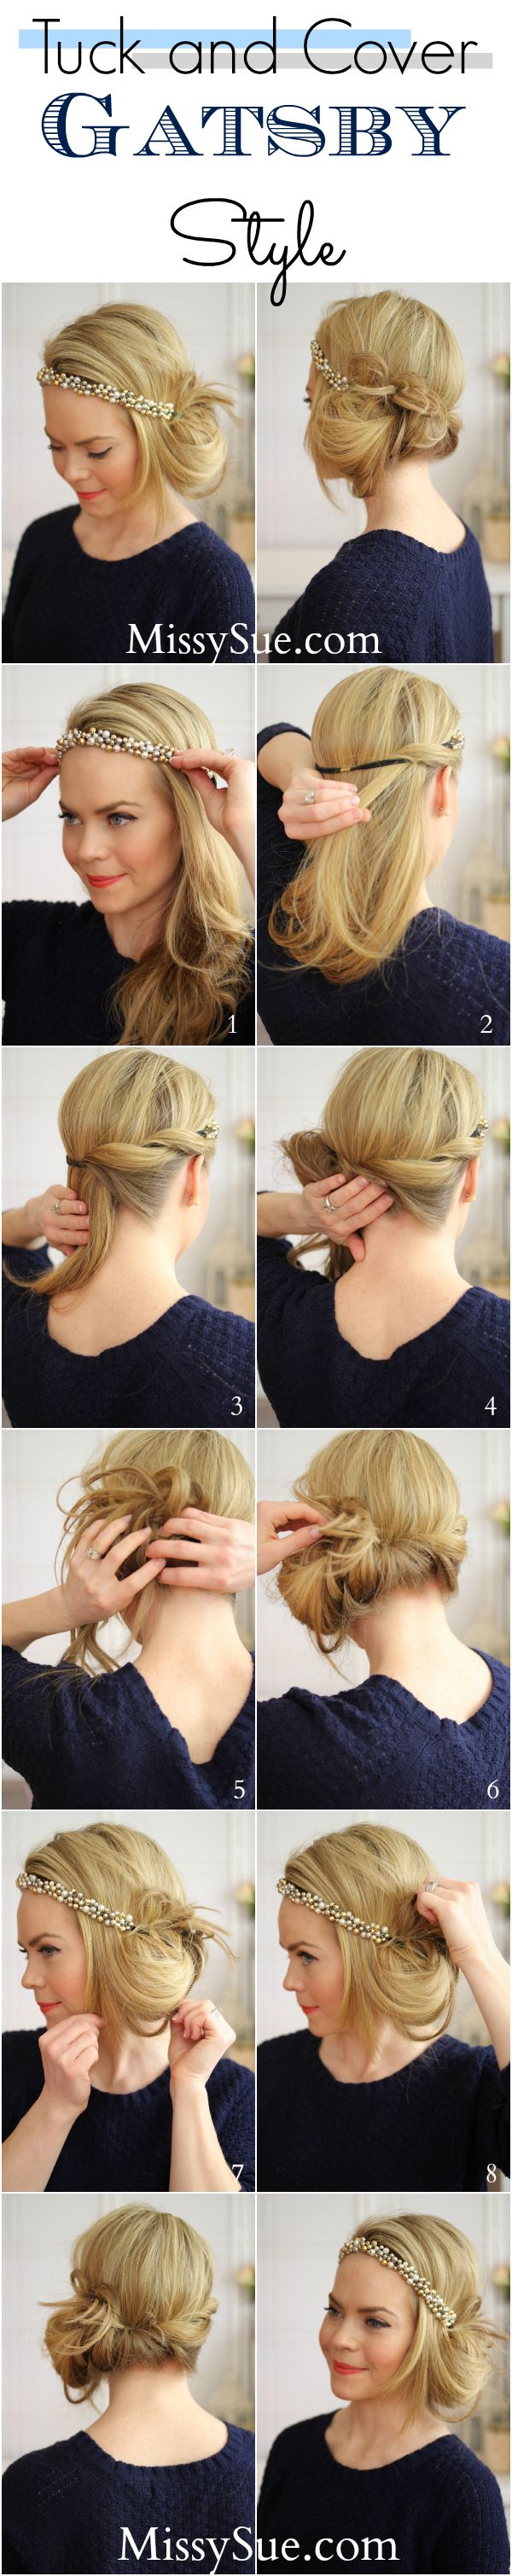 tuck and cover gatsby hair tutorial bmodish